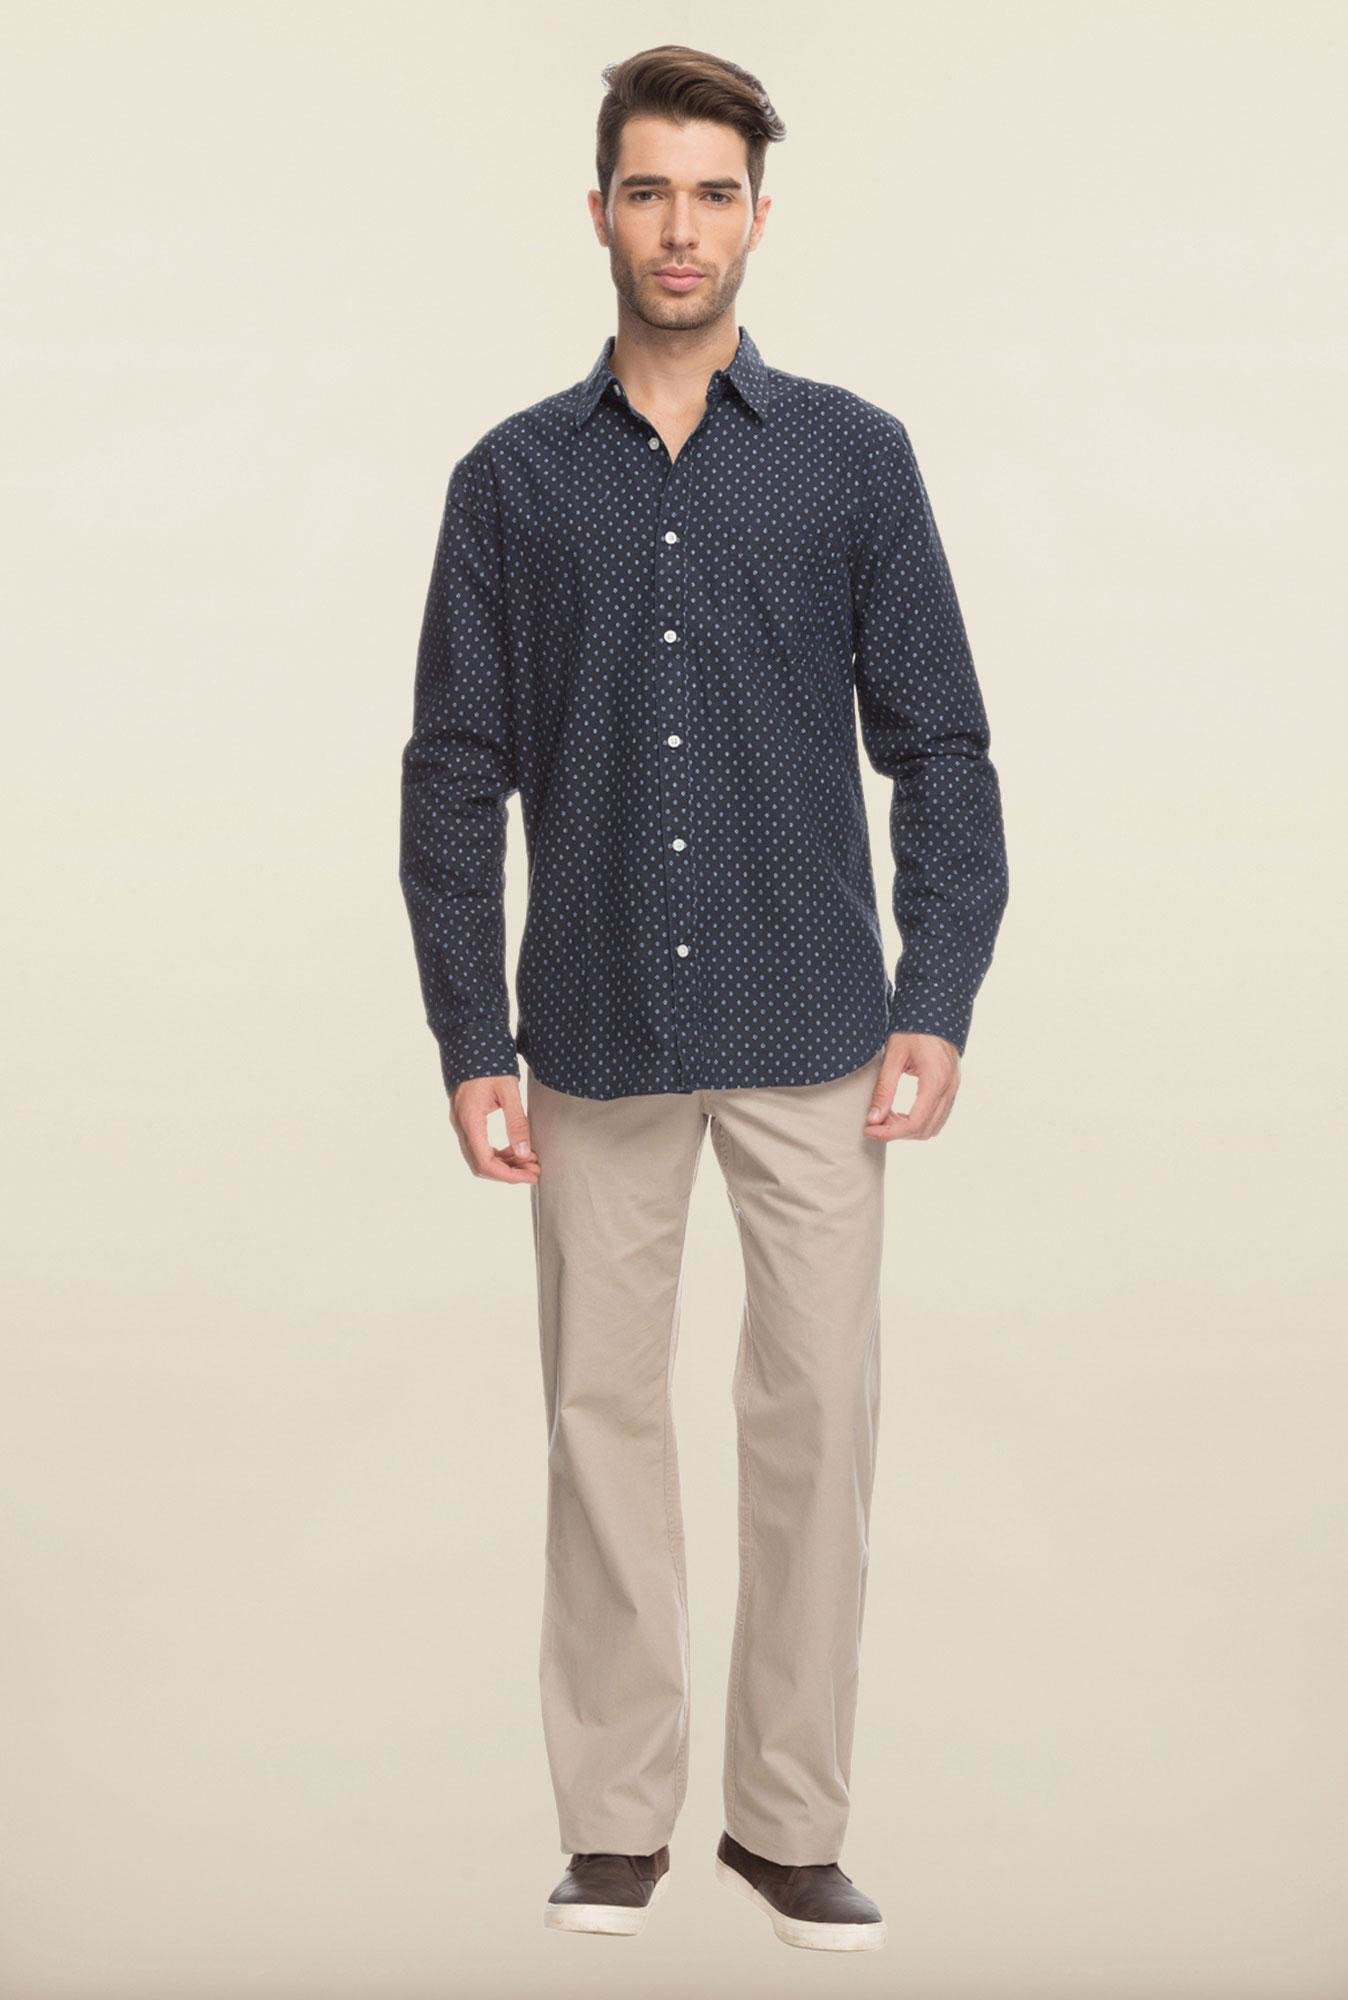 Cottonworld Navy Printed Casual Shirt